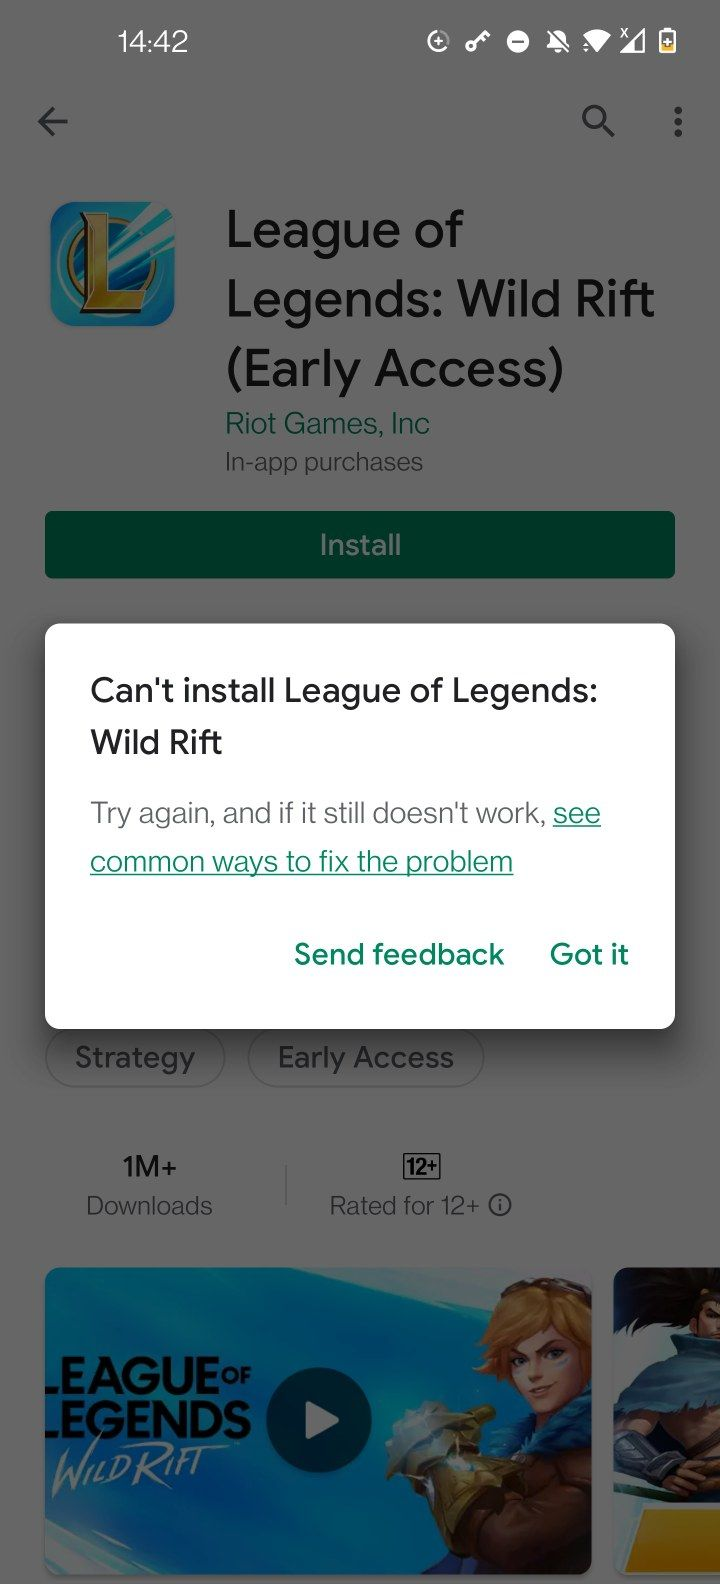 Cant install updates or download games on Play Store